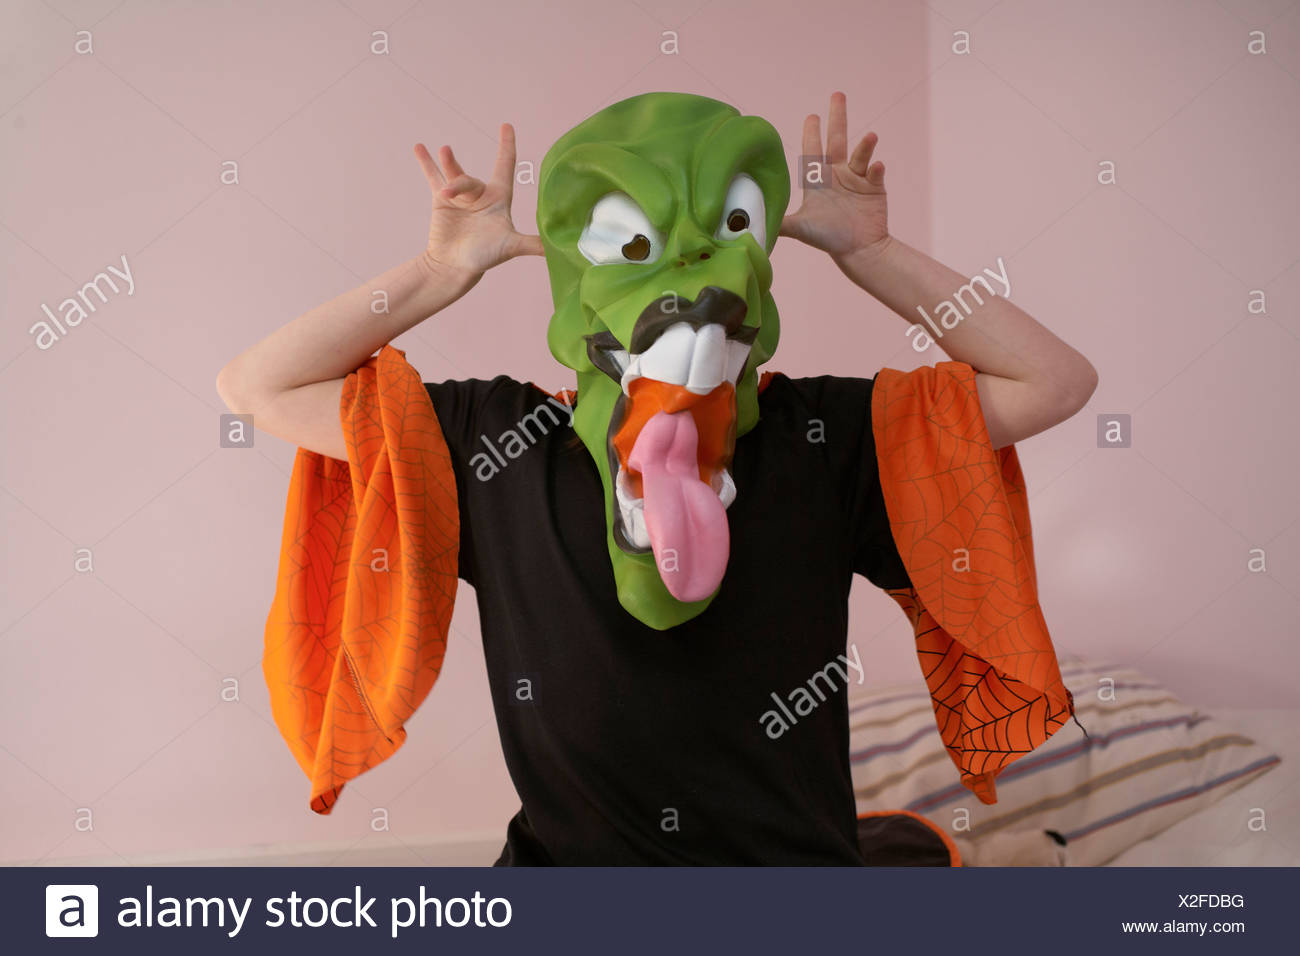 Child grimacing in Halloween costume - Stock Image